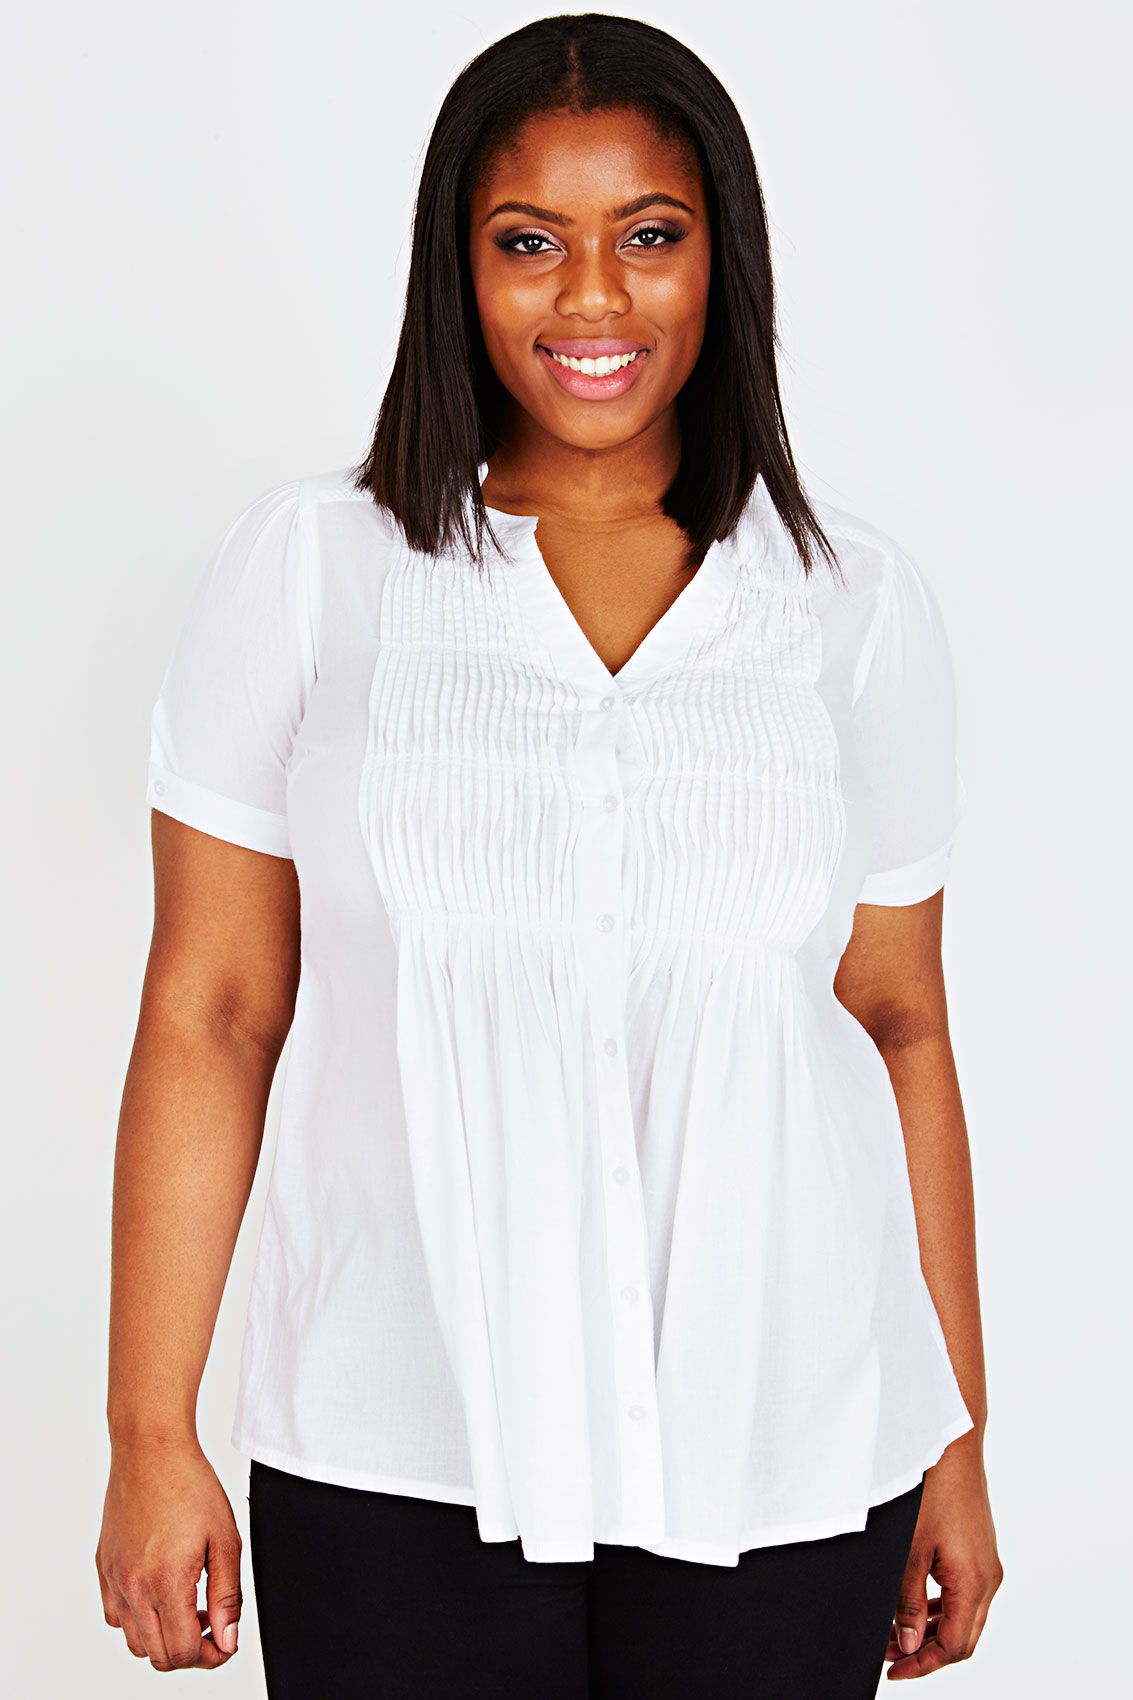 Find a full collection of Women's Plus Size Tops,Plus Size Shirts & Blouses in modern and classic styles, also find plus size dresses, jeans, career, pants, shirts, sweaters, coats and more.